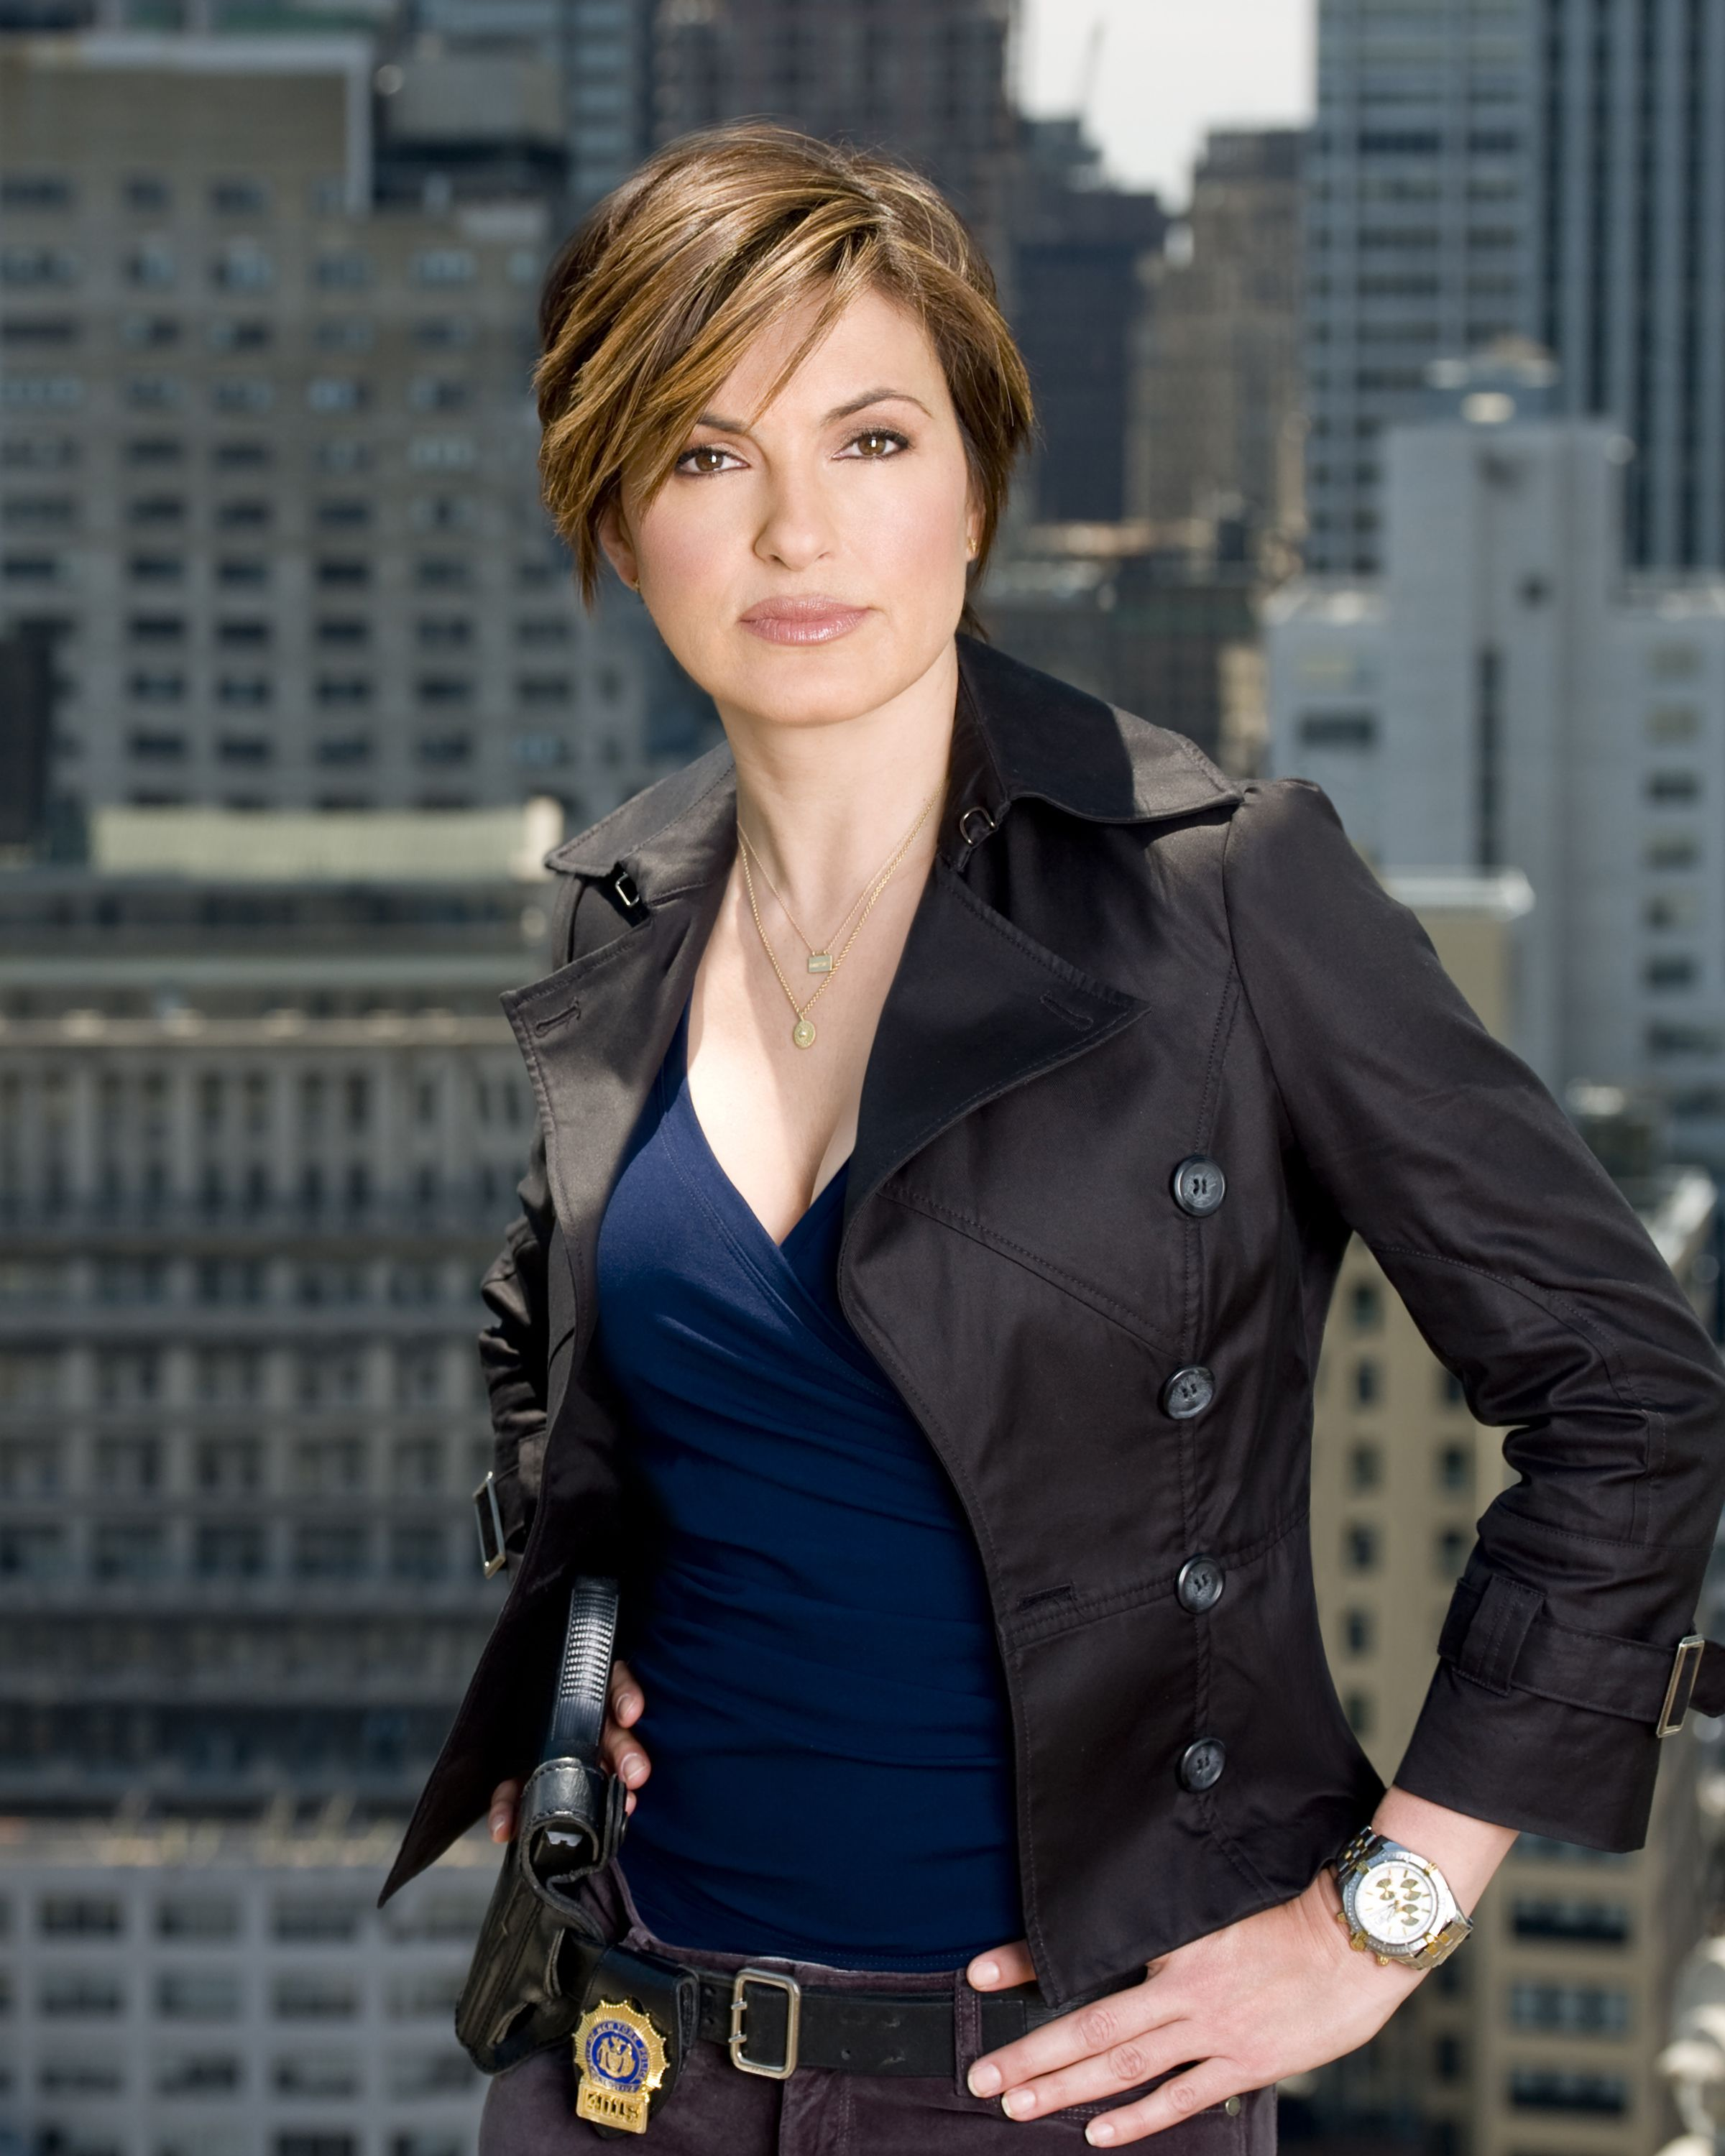 law & order: special victims unit season 9 - olivia benson